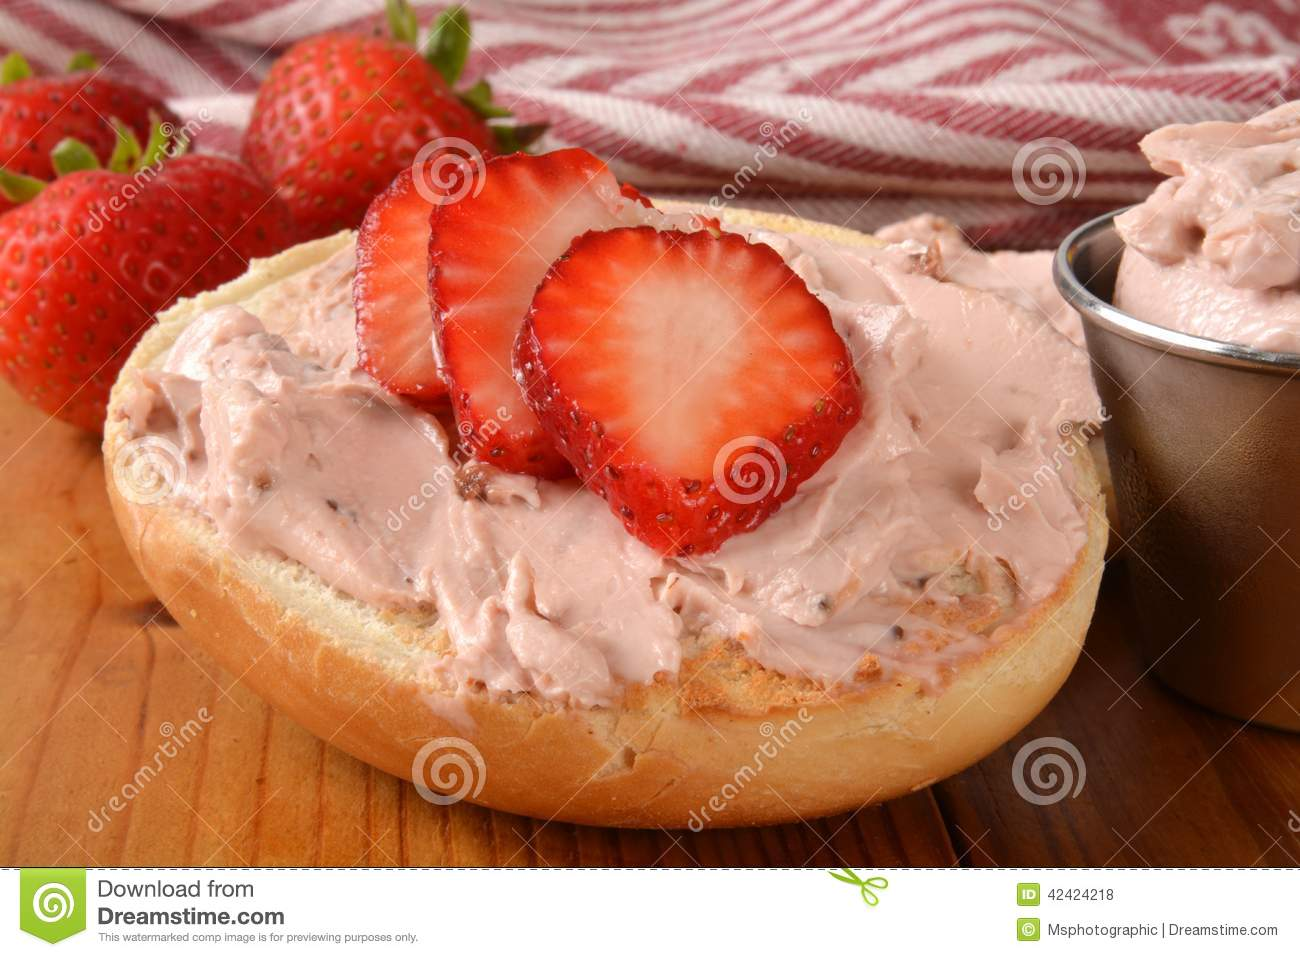 strawberry cream cheese on a bagel closeup stock photo image of rh dreamstime com Bagel Cartoon Clip Art Cream Cheese and Bagel Clip Art